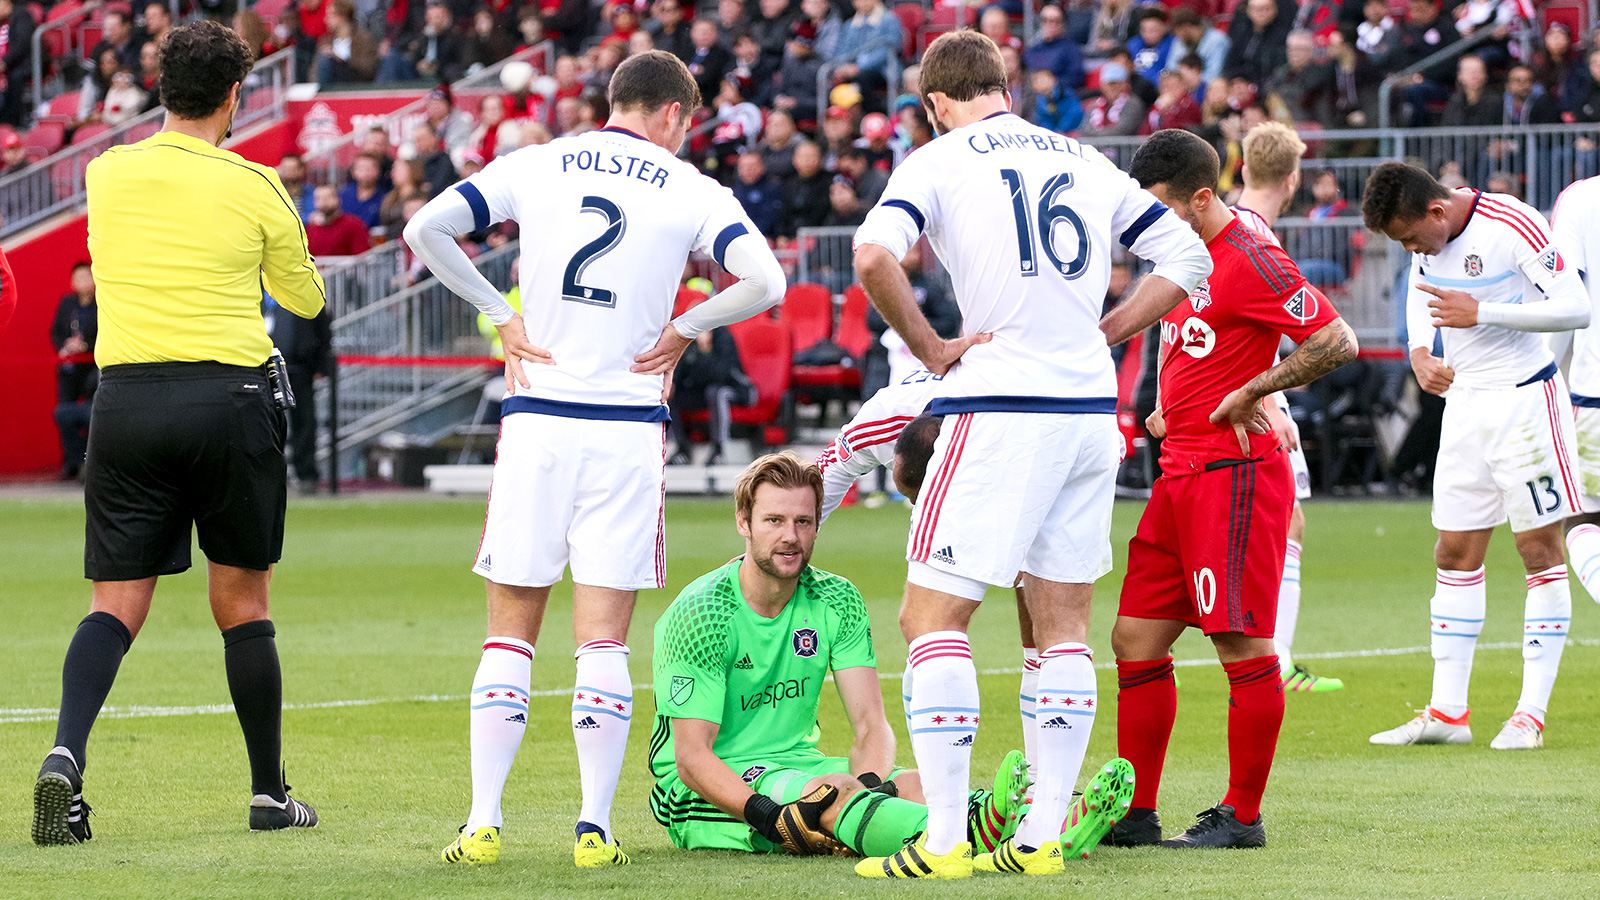 Chicago Fire Goalkeeper Patrick McLain stares down the photographer while waiting to receive medical treatment.